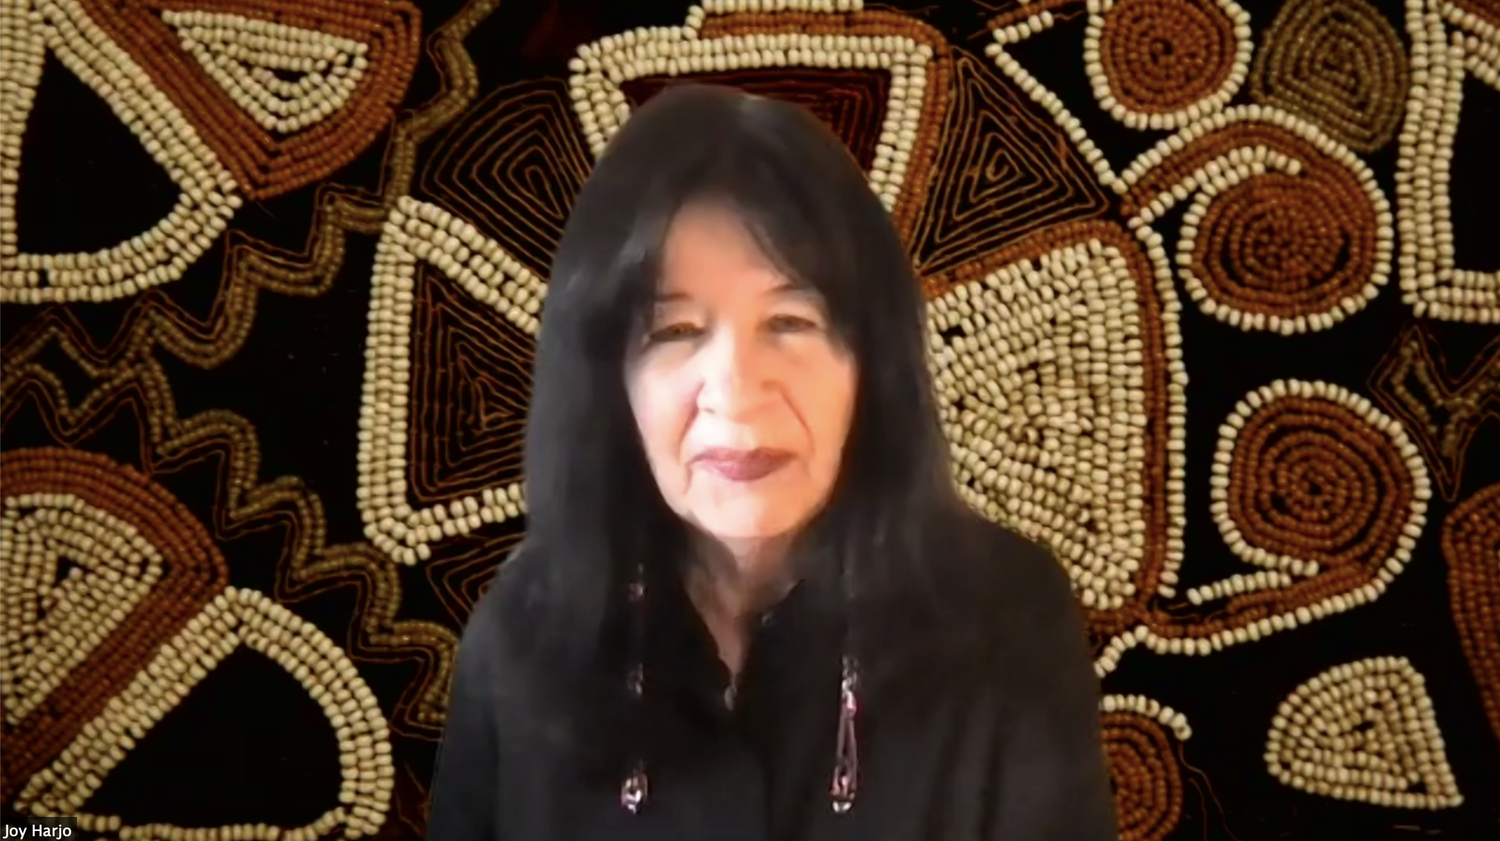 Joy Harjo discussed Native American identity through poetry during a Monday webinar co-hosted by the Harvard University Native American Program and the Harvard Art Museums.